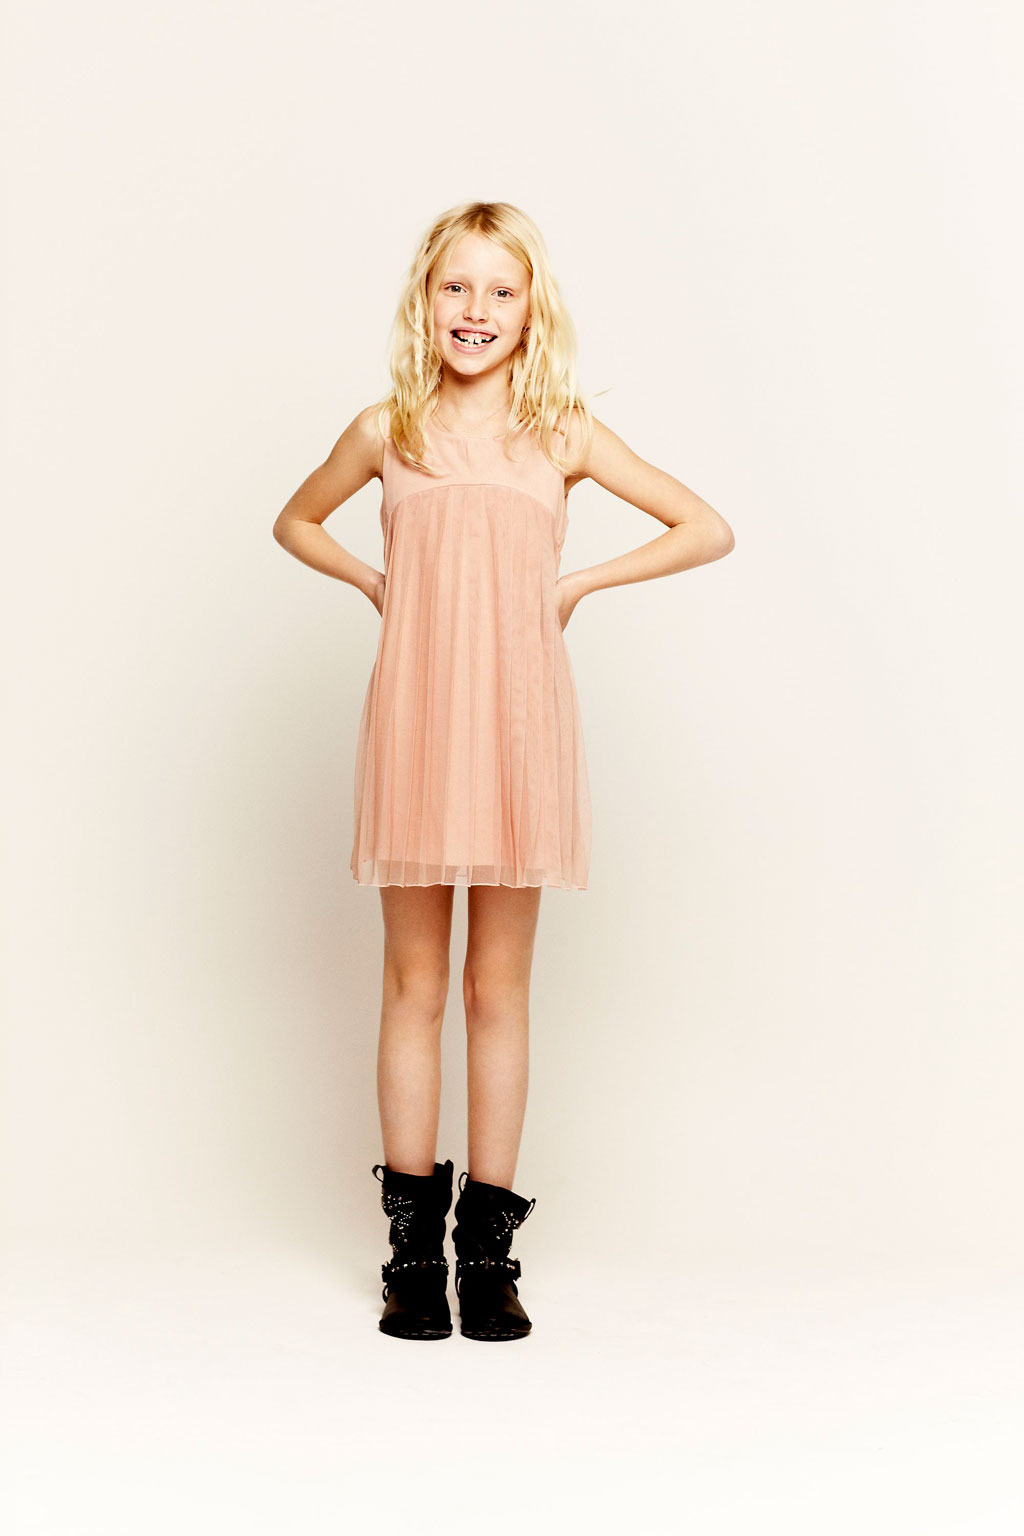 Kid Dresses for Boys - Fashion Style Trends 2019